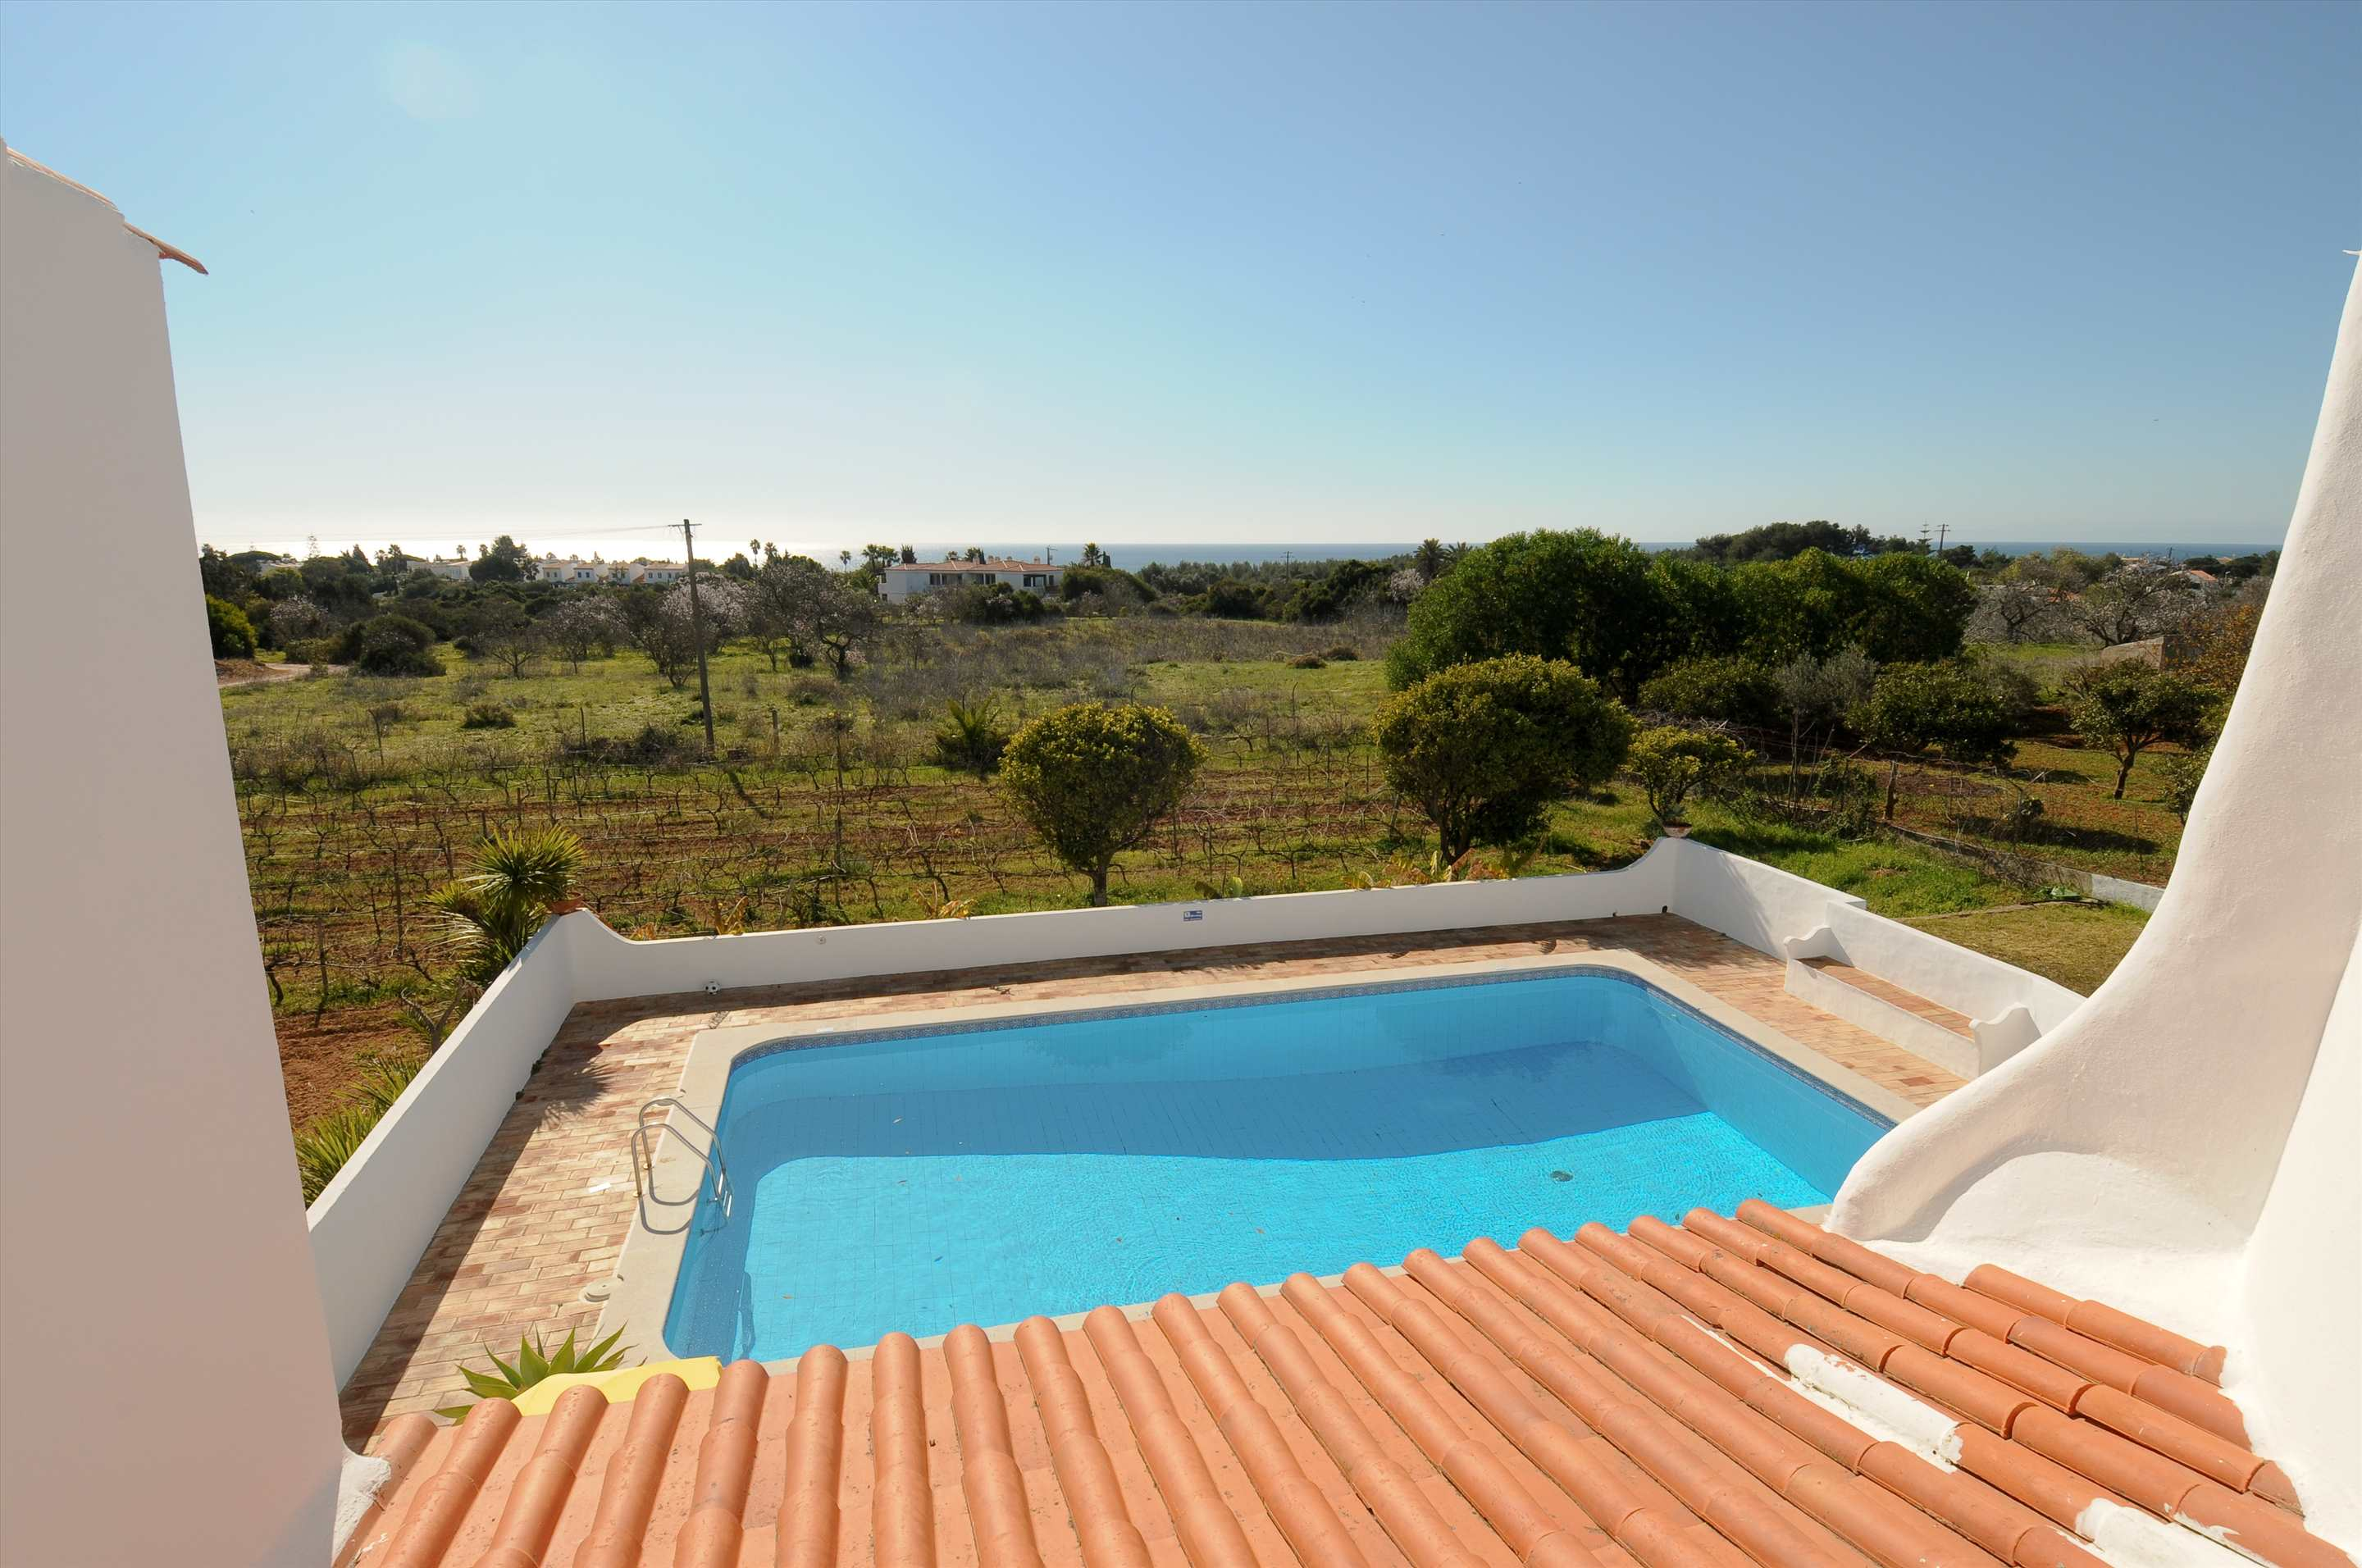 Casa Alexandra, 7-8 persons rate, 4 bedroom villa in Carvoeiro Area, Algarve Photo #6